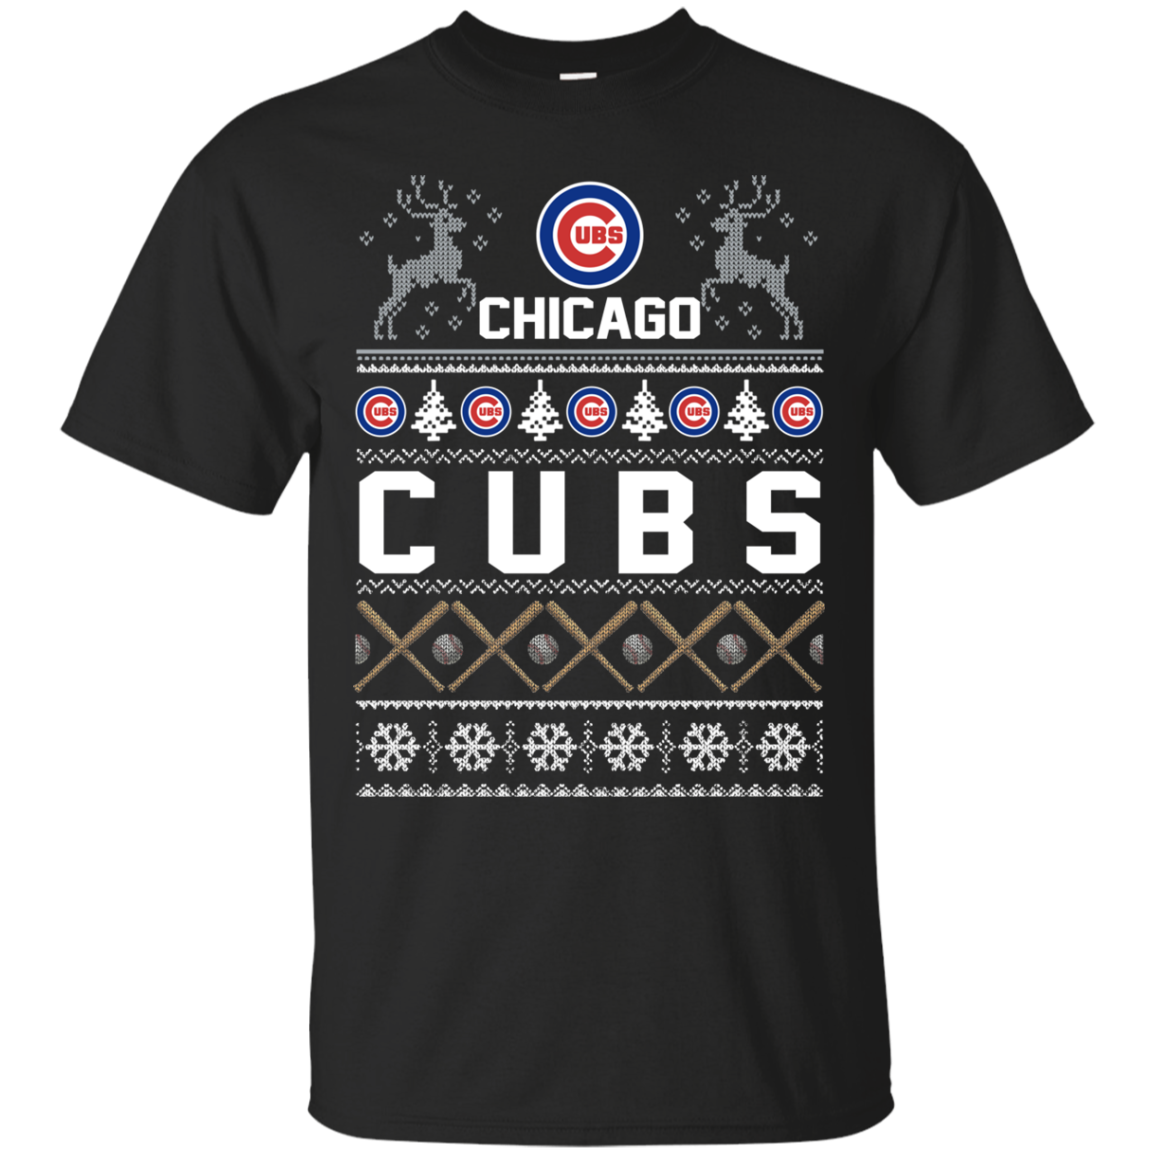 Order Chicago Cubs Ugly Christmas T Shirt